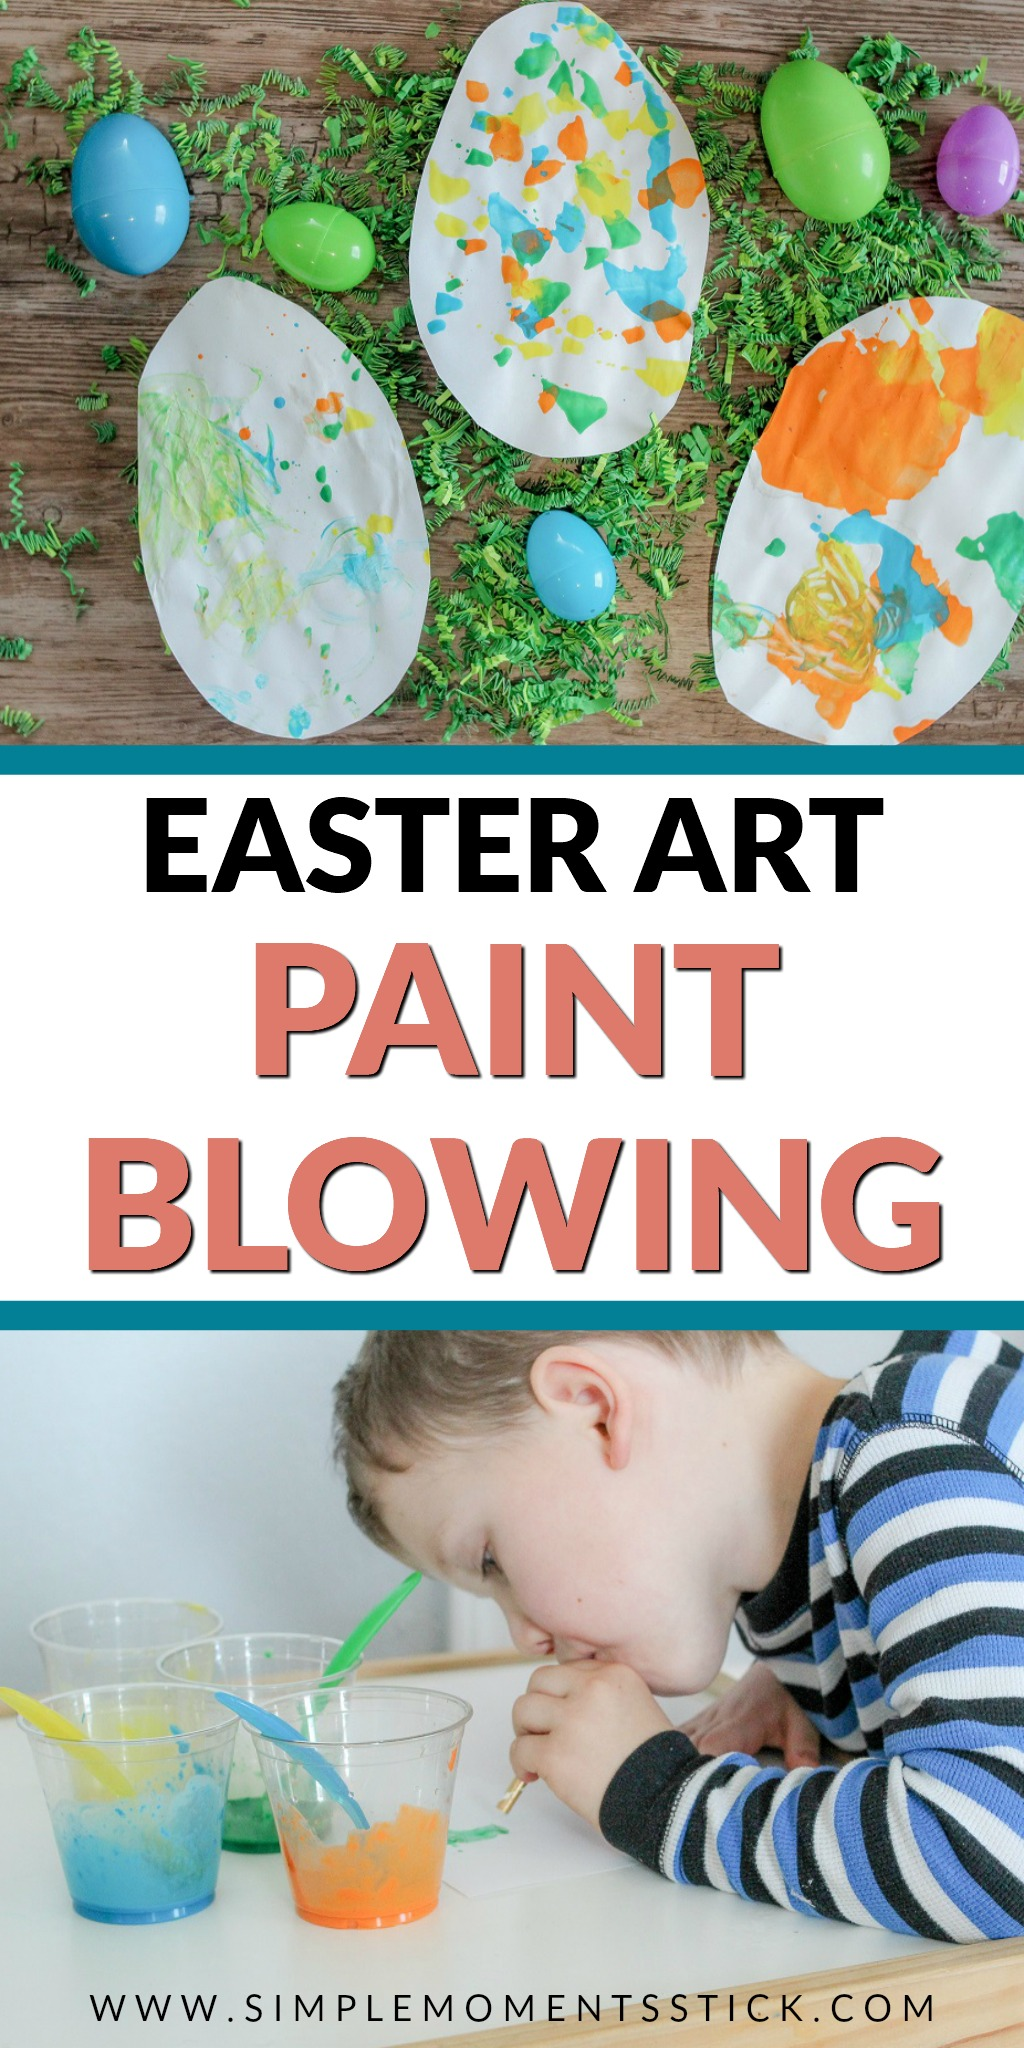 Blowing paint with straws. Easter craft idea. Painted Easter Eggs